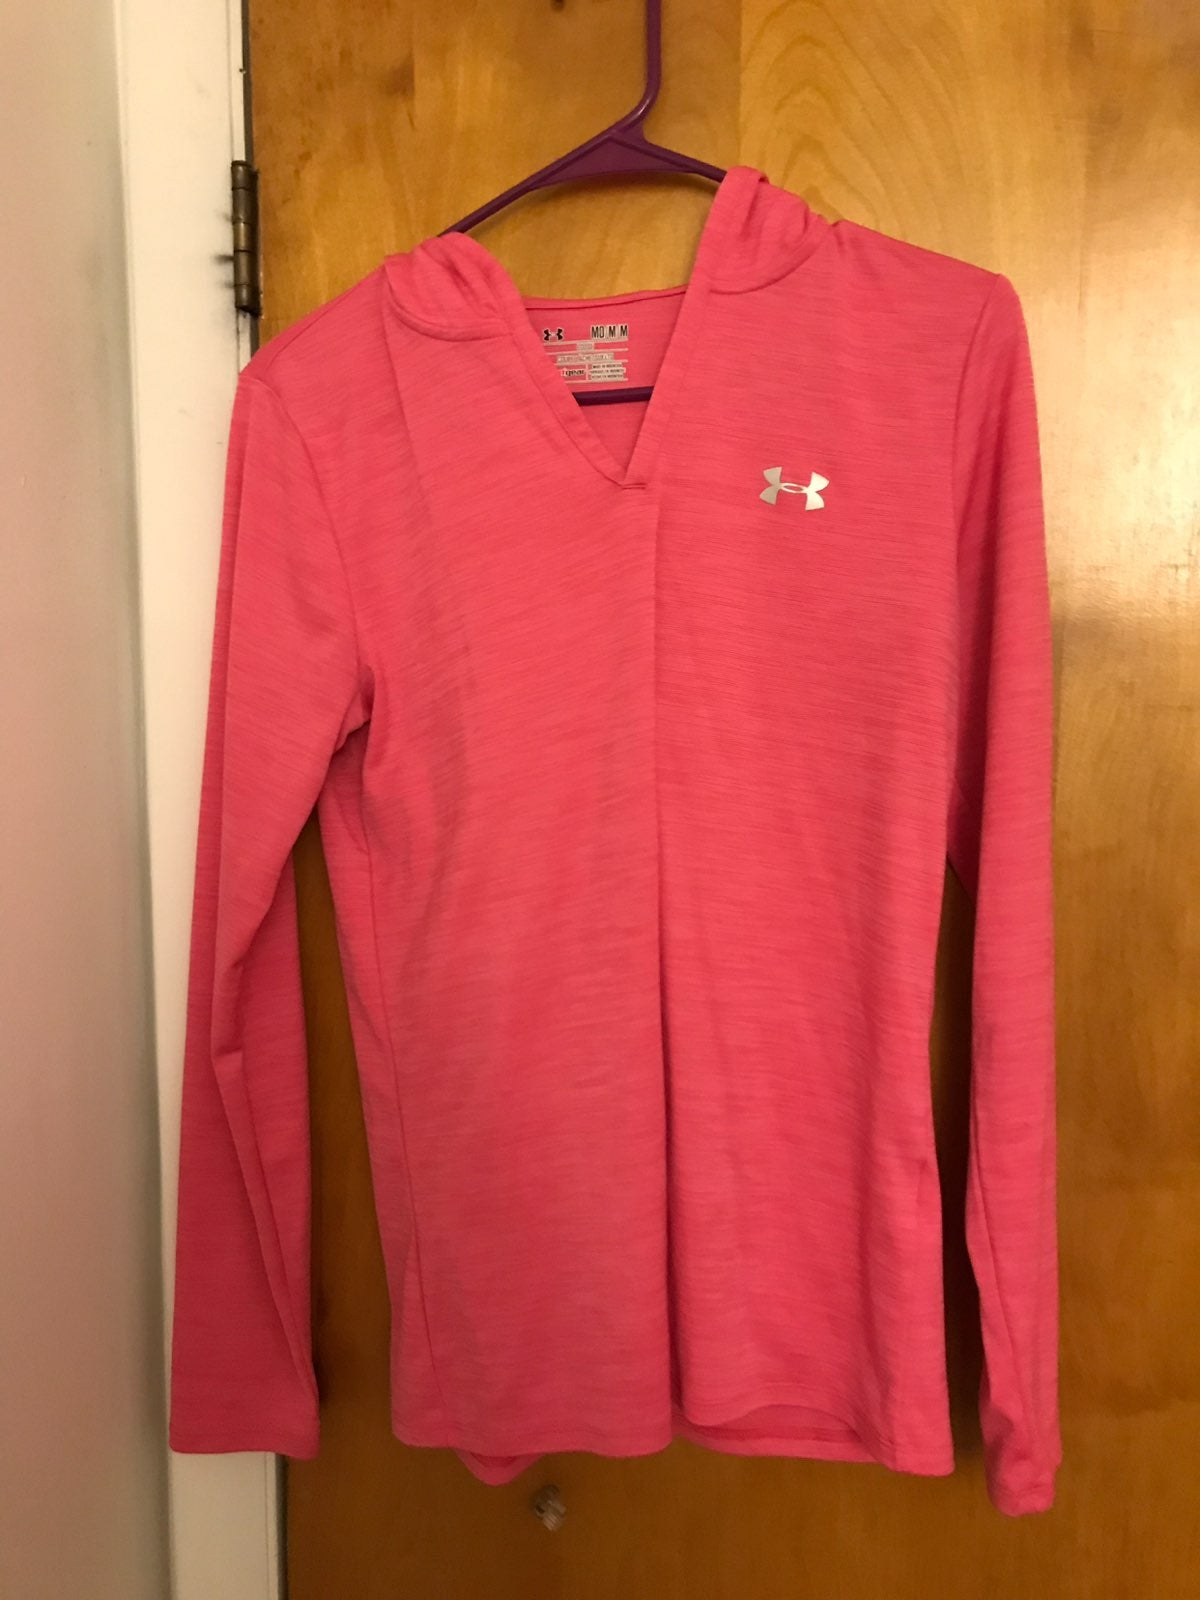 Under Armour Hoody Size Medium